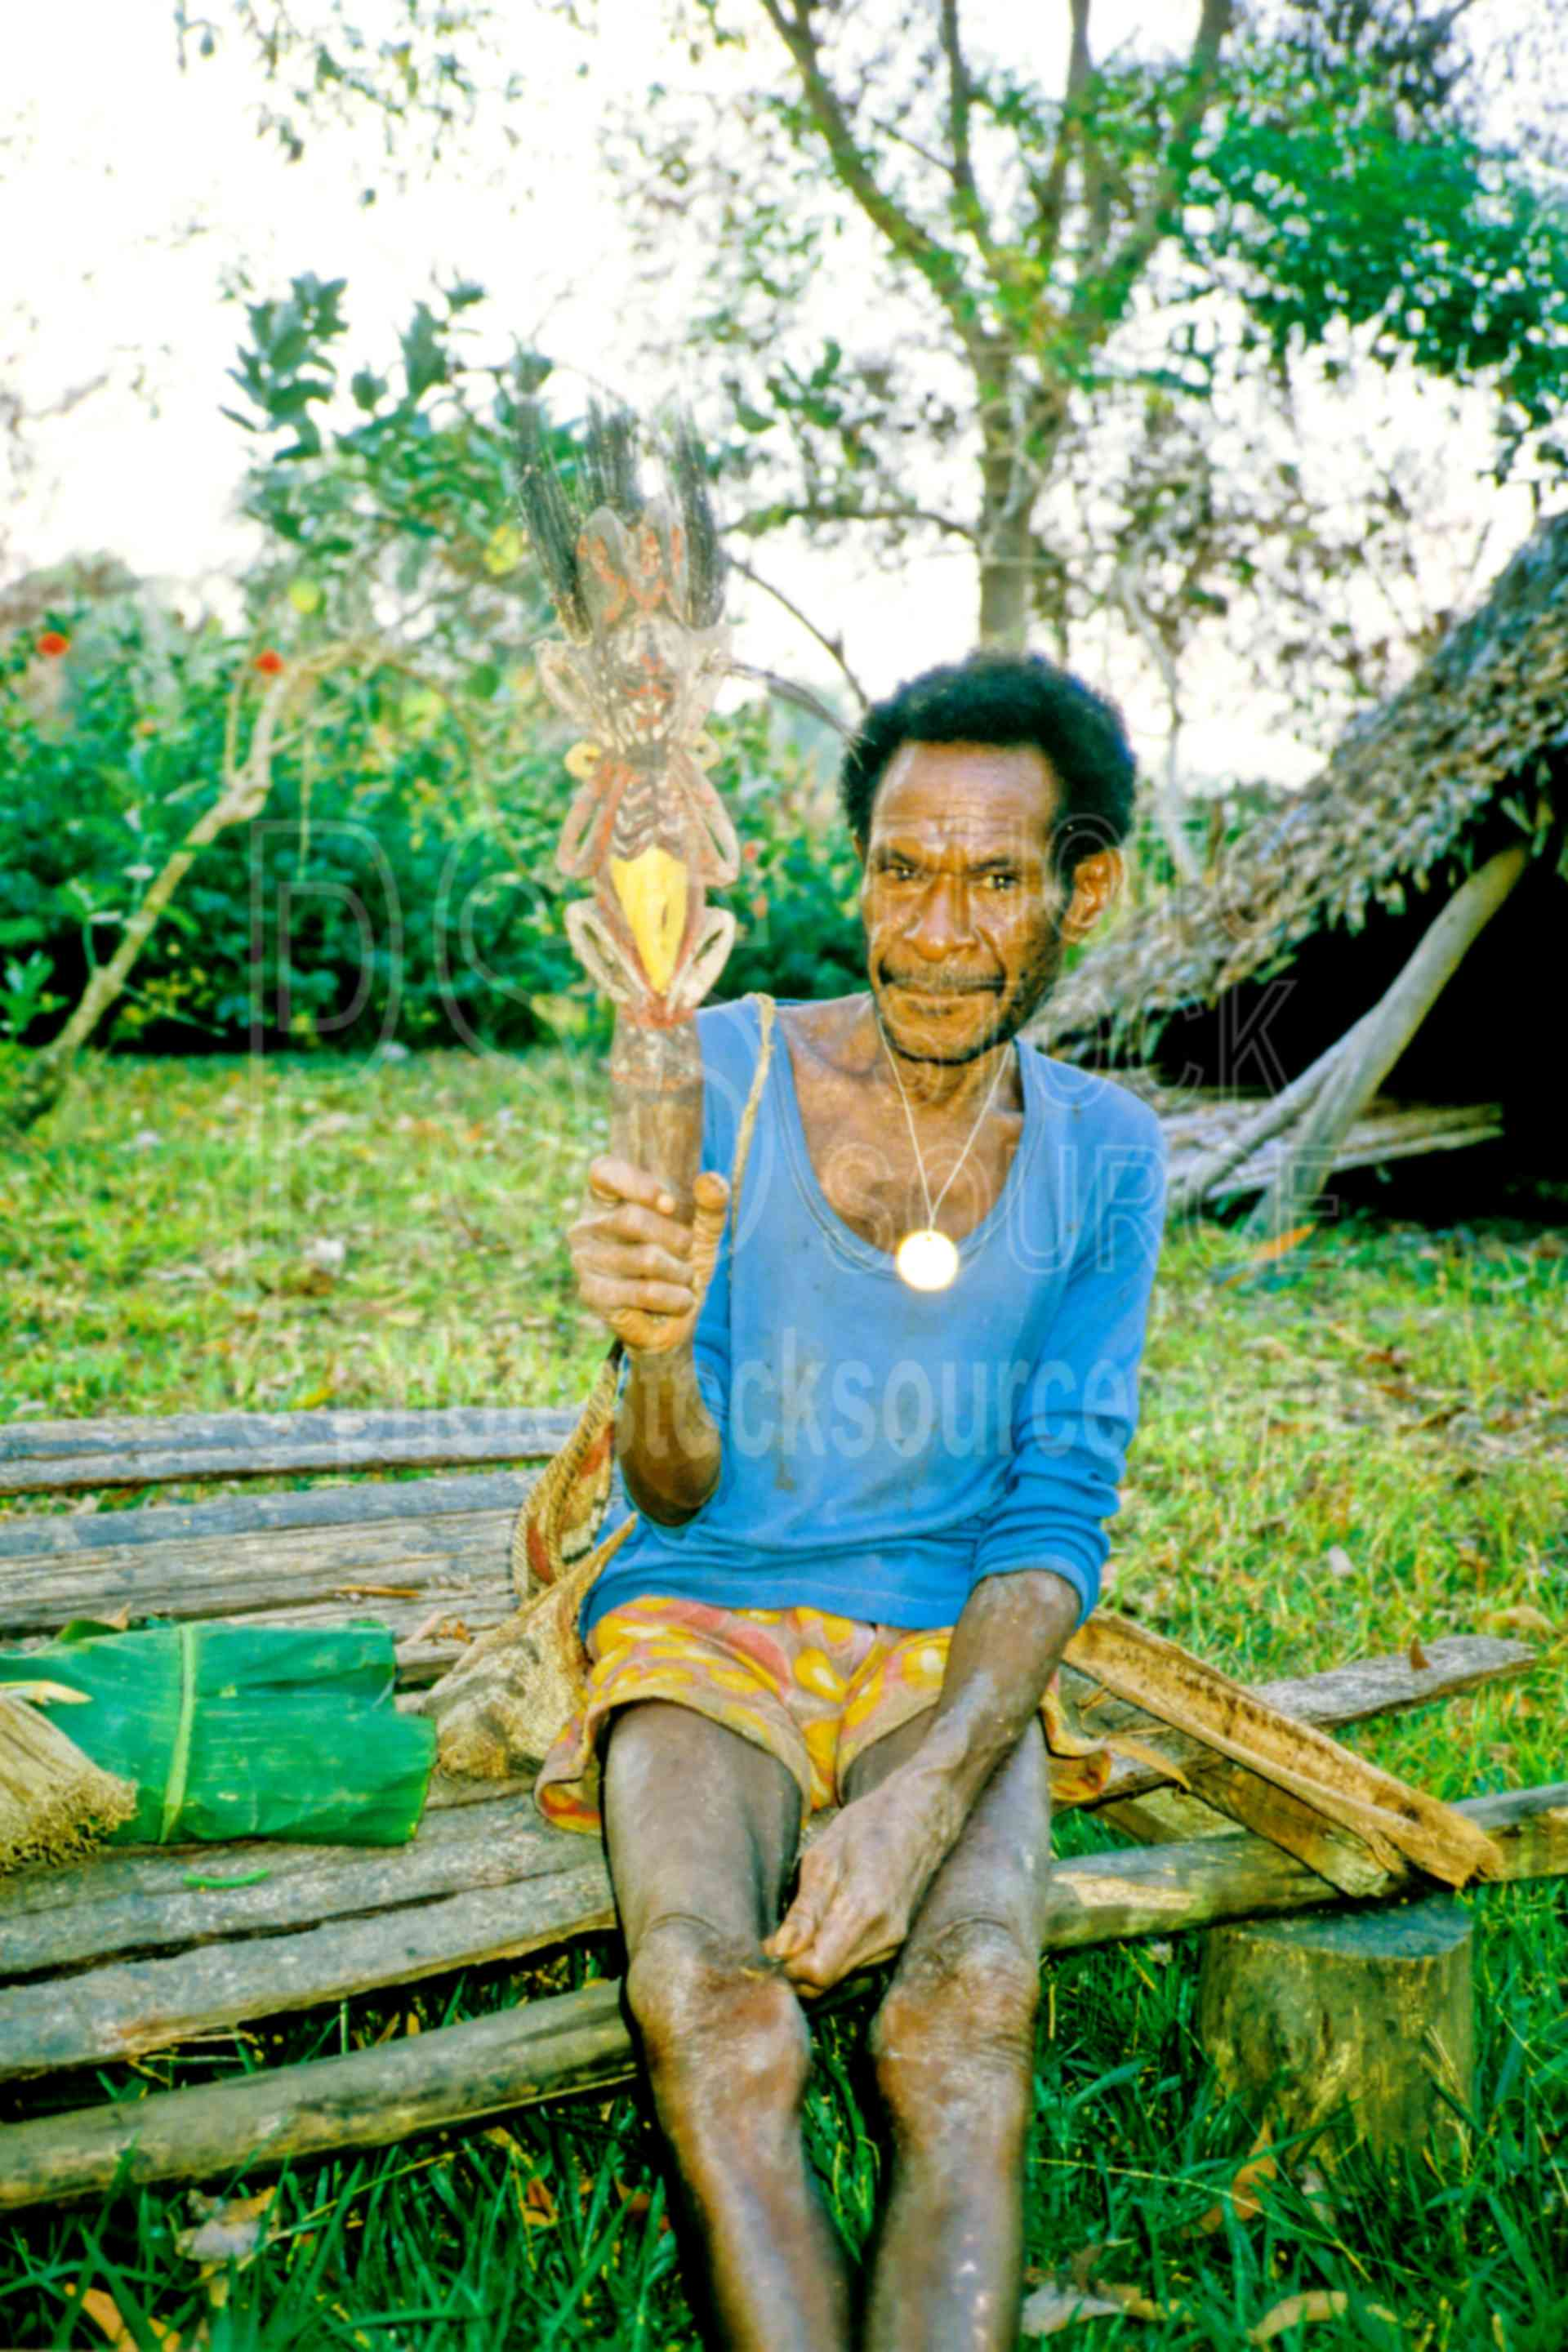 Man with Carving,artifact,carving,arts,artist,png markets